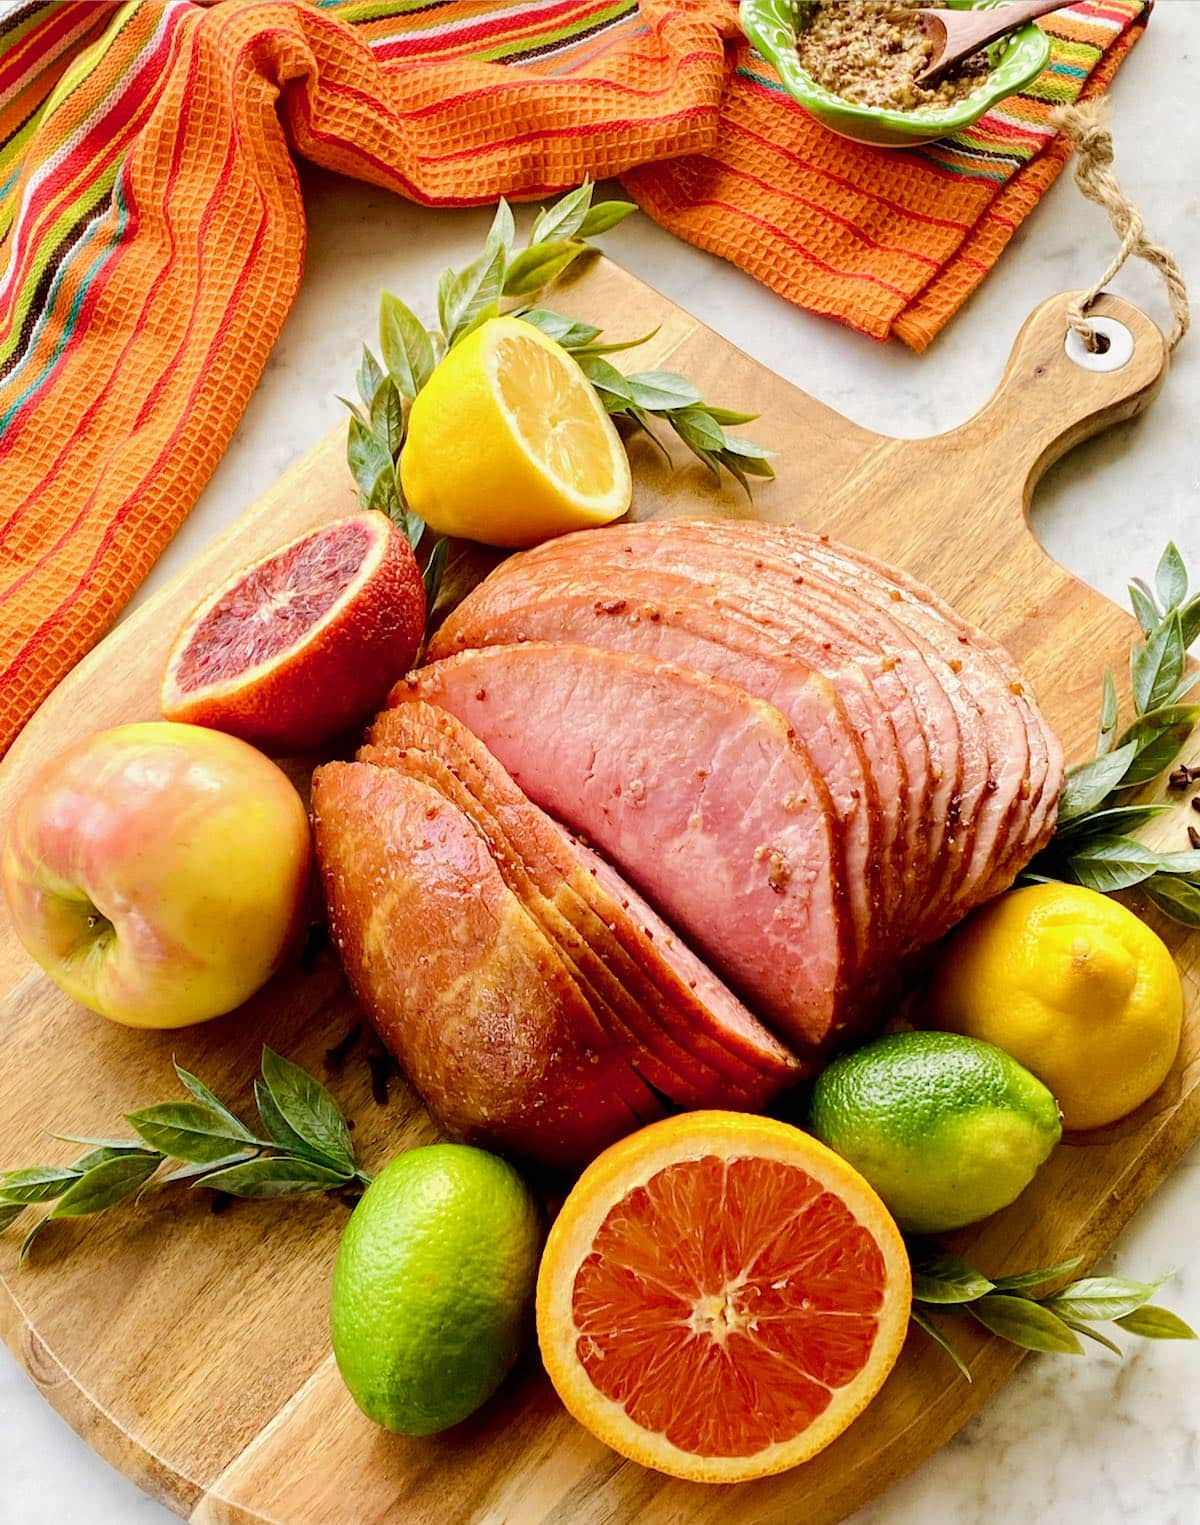 ham surrounded by lemons, oranges, apples and limes.